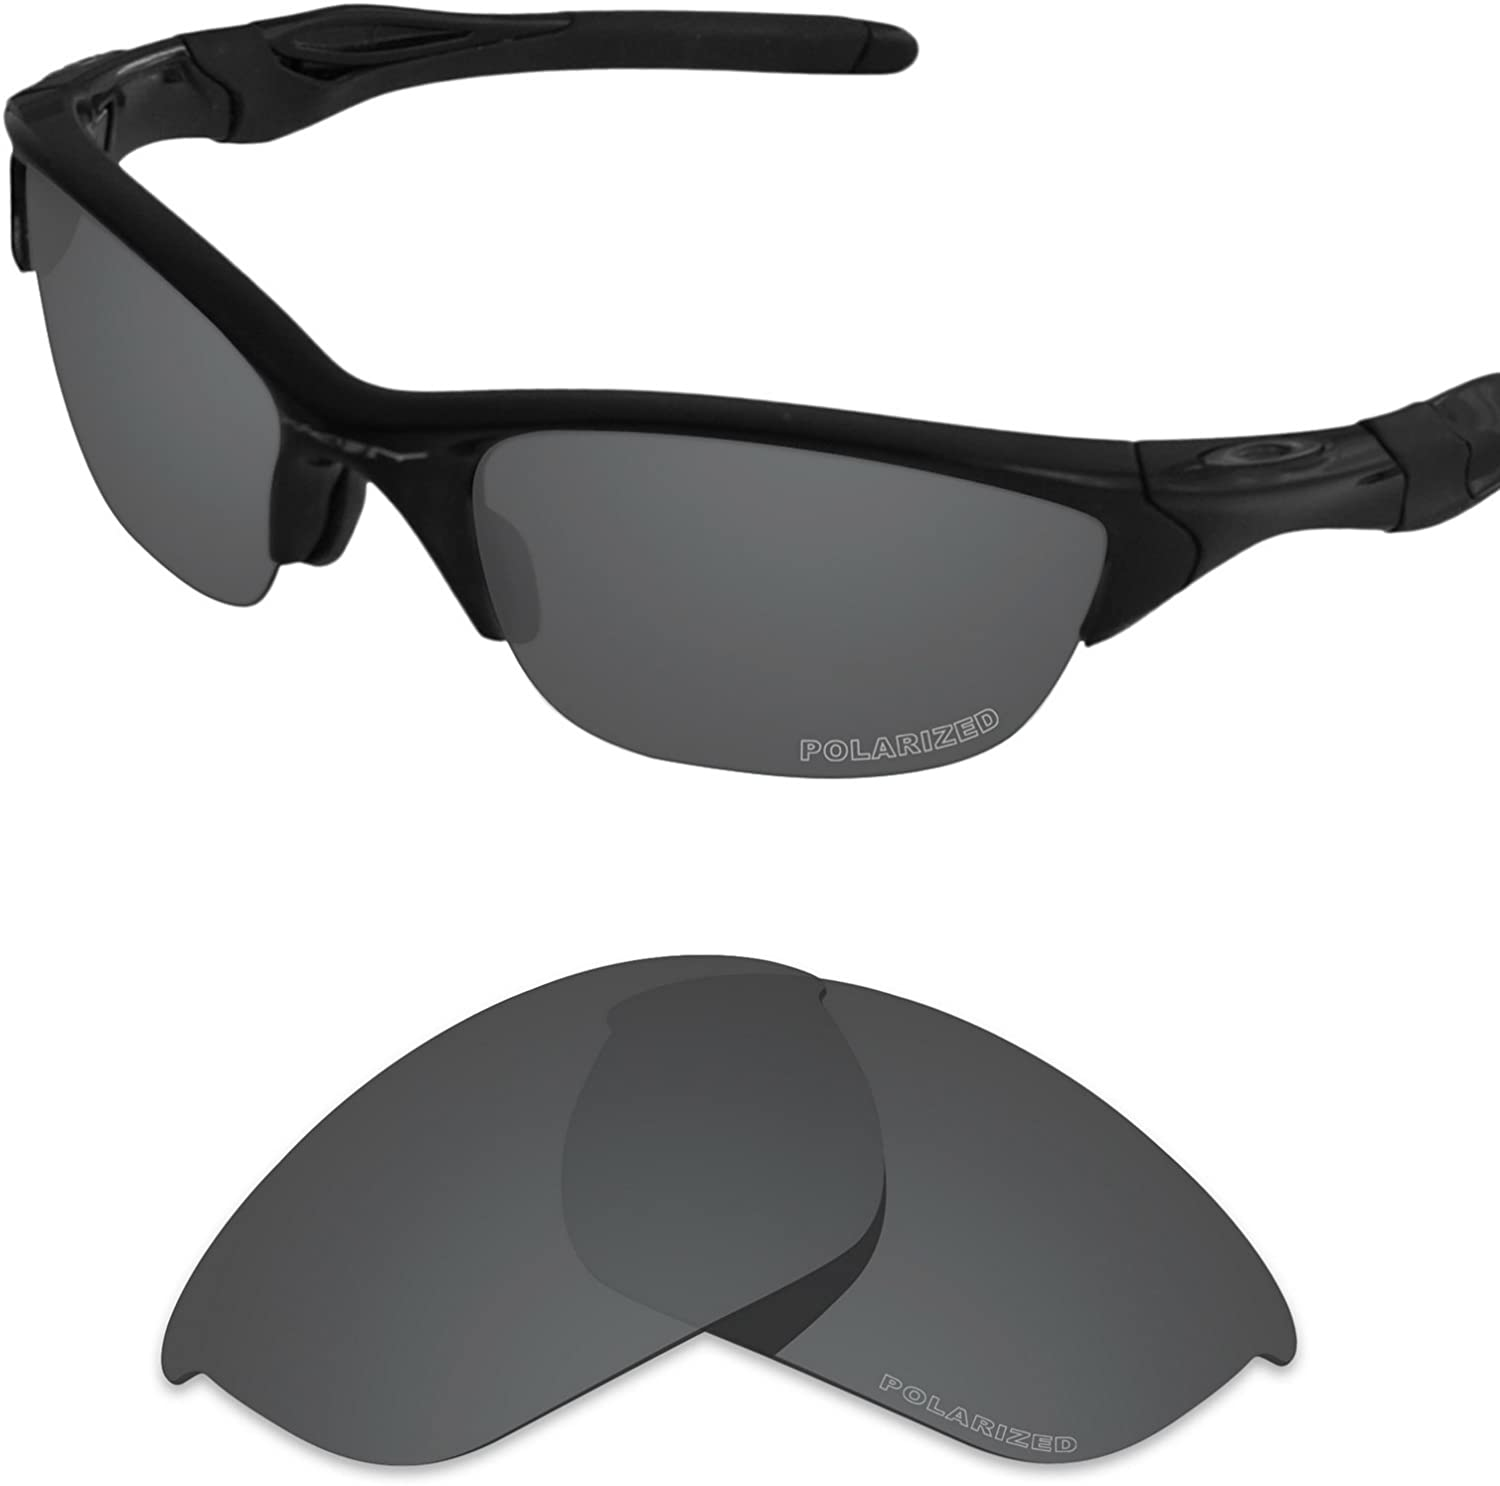 Tintart Performance Lenses Compatible with Oakley Half Jacket 2.0 Polarized Etched